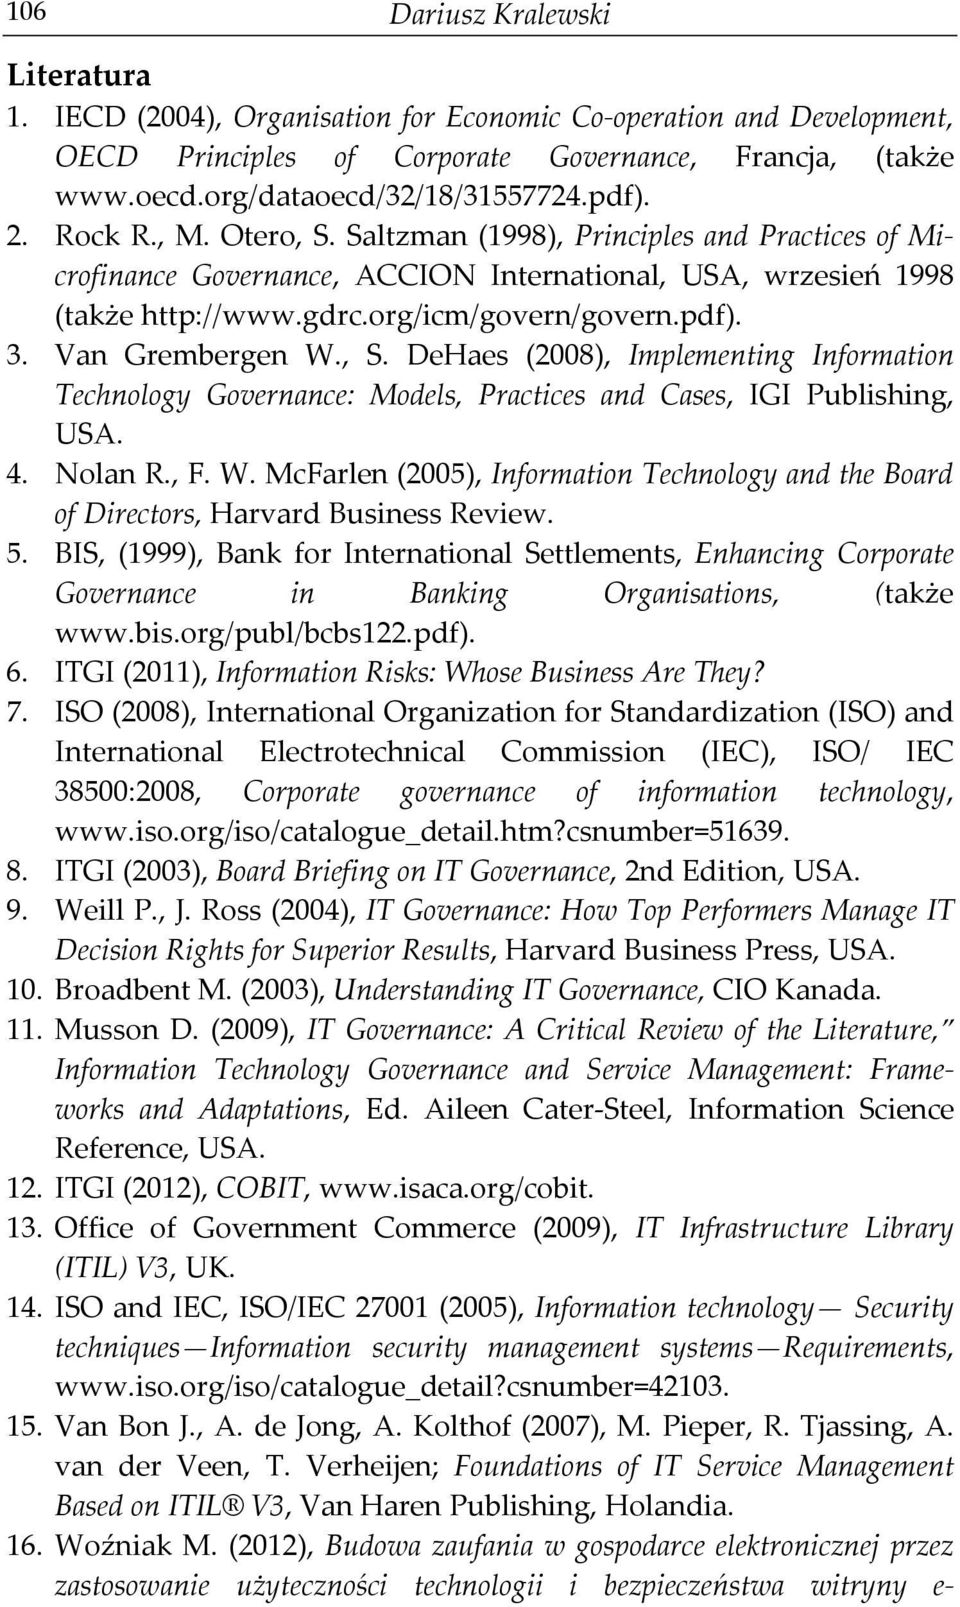 Van Grembergen W., S. DeHaes (2008), Implementing Information Technology Governance: Models, Practices and Cases, IGI Publishing, USA. 4. Nolan R., F. W. McFarlen (2005), Information Technology and the Board of Directors, Harvard Business Review.